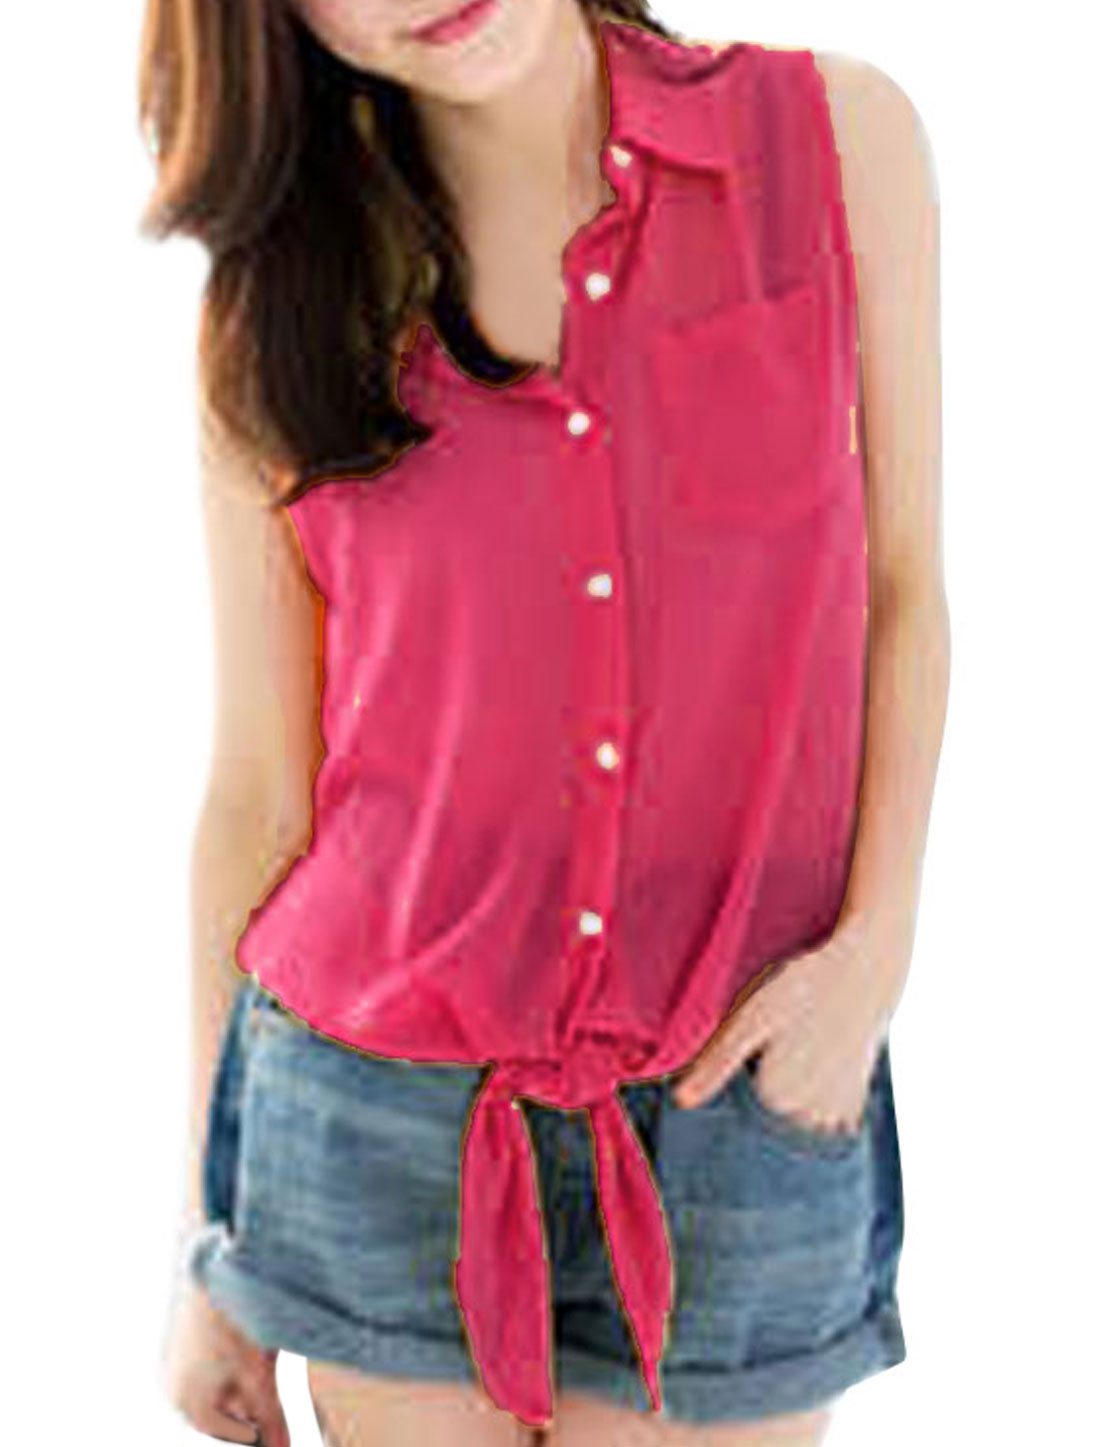 Women Sleeveless Single Breasted Chiffon Tops Blouses Dark Pink XS